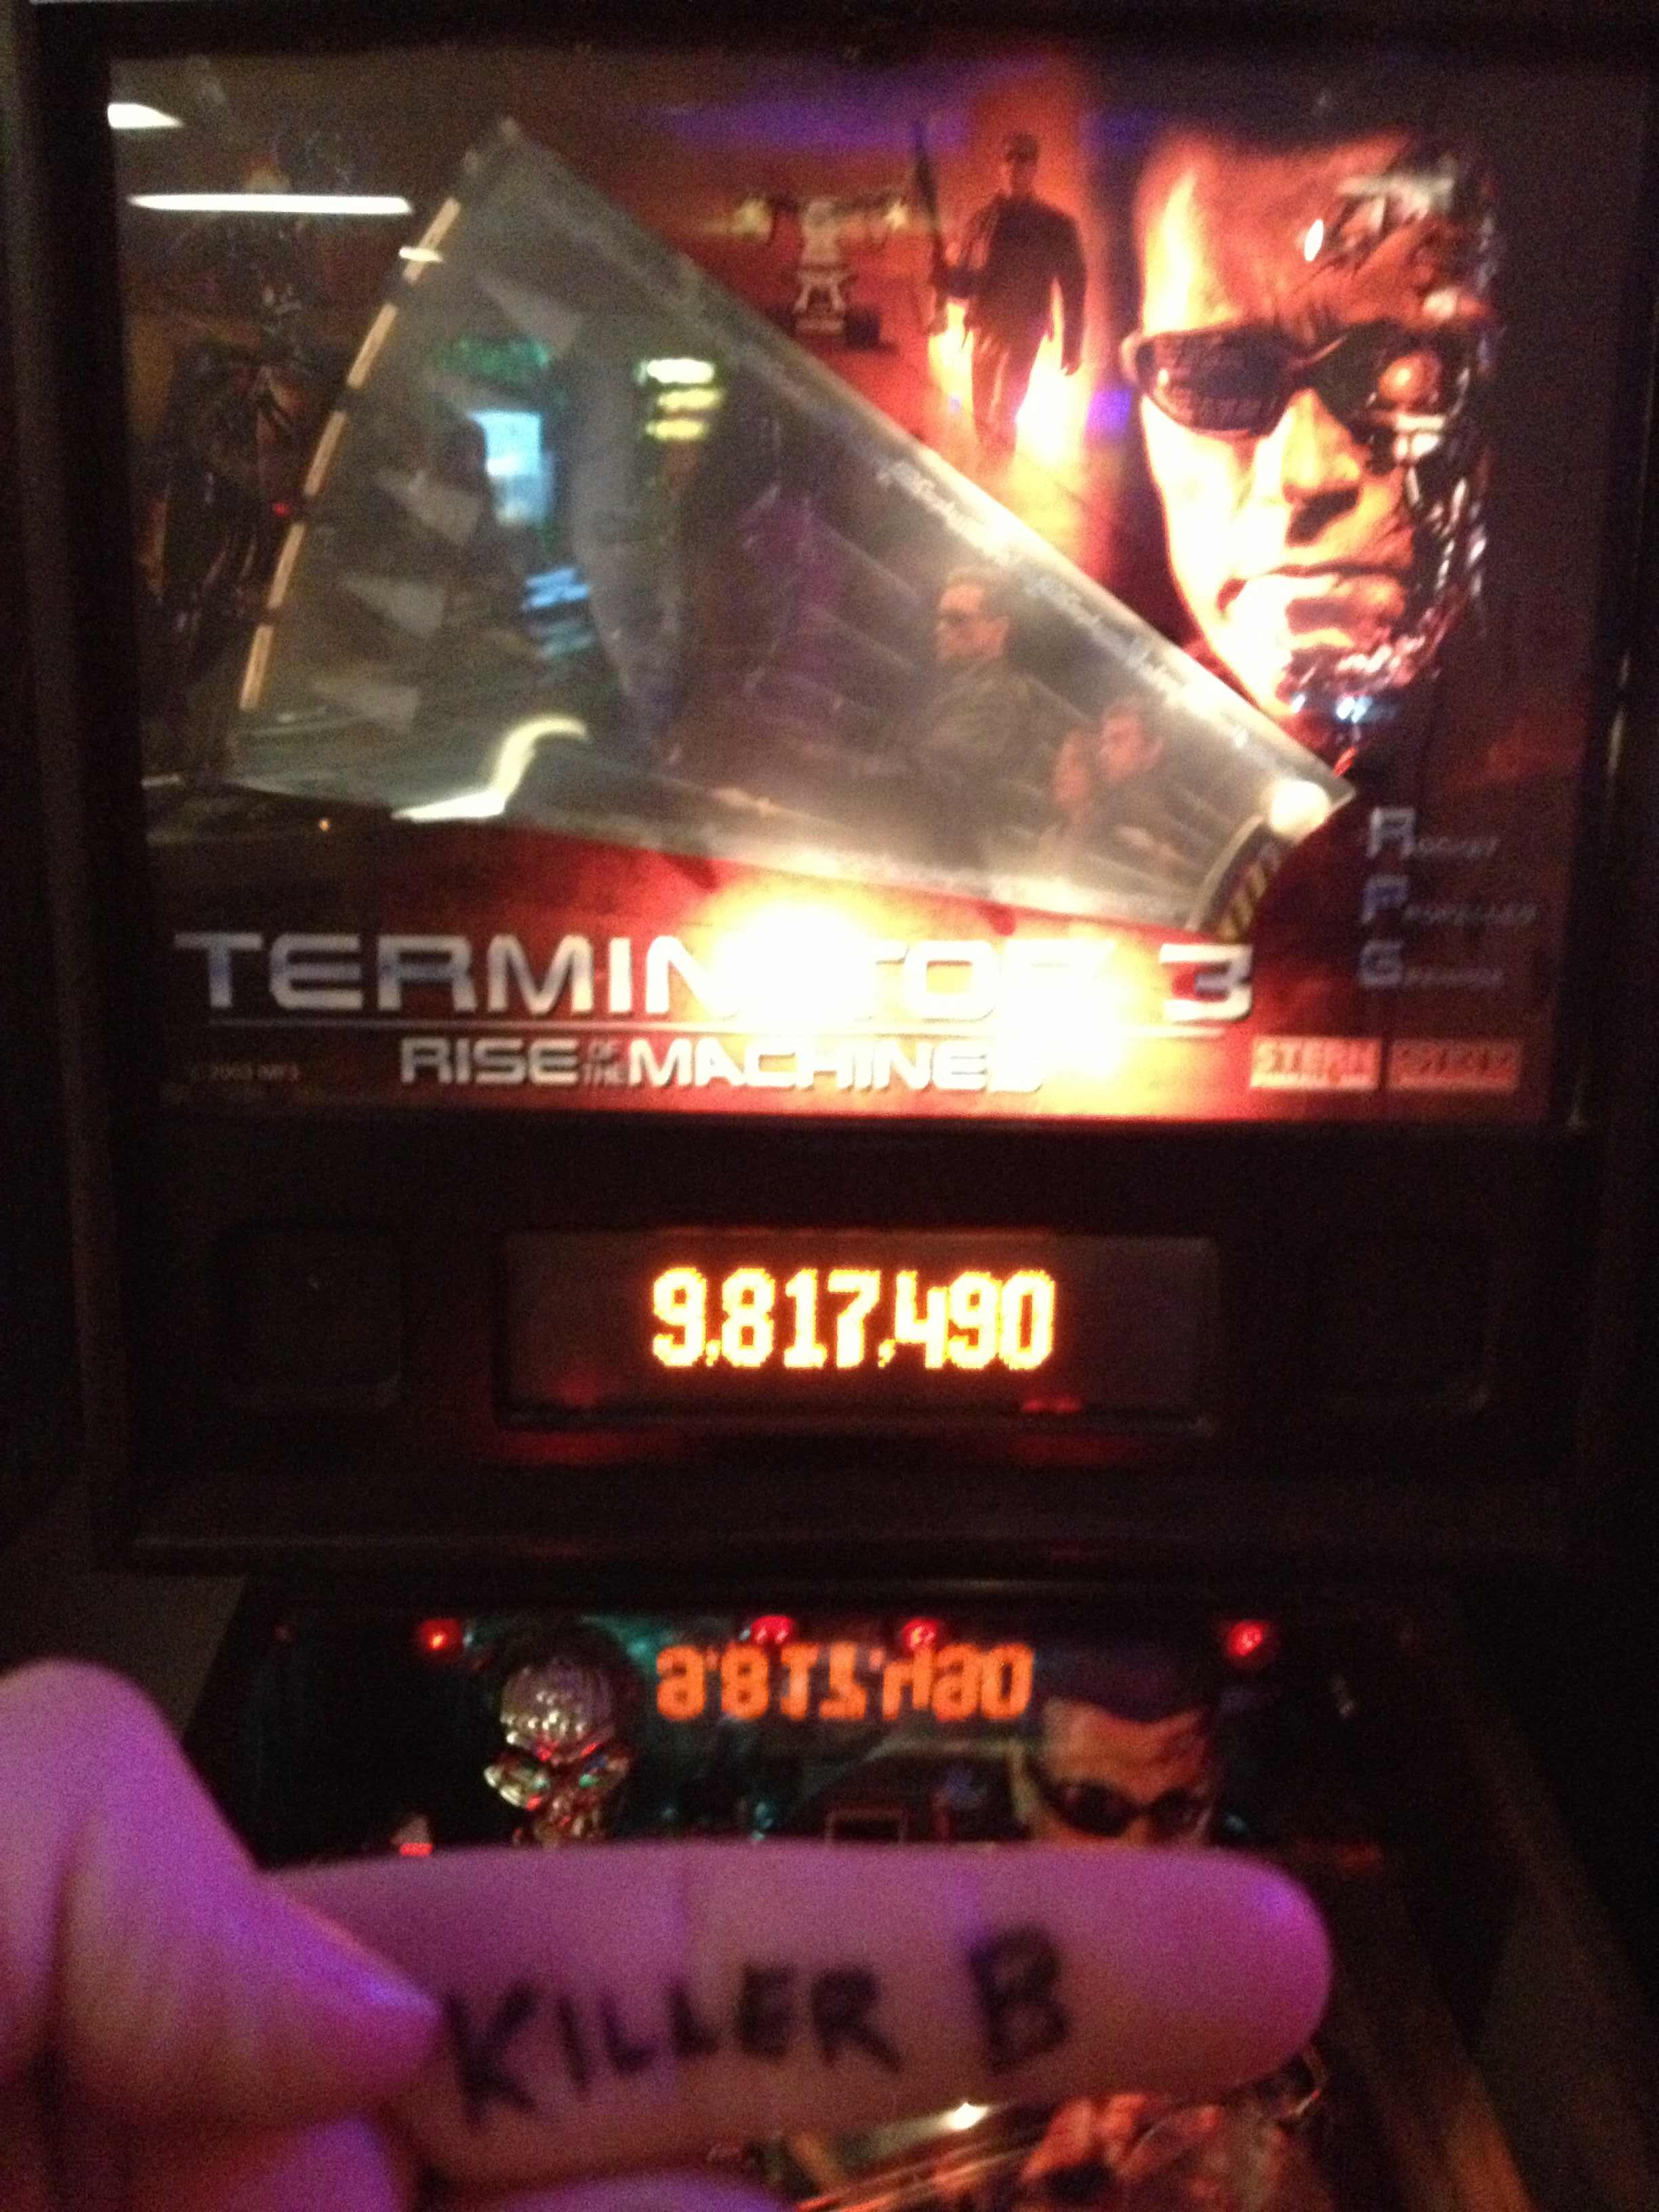 KillerB: Terminator 3: Rise of the Machines (Pinball: 3 Balls) 9,817,490 points on 2013-10-06 01:14:26